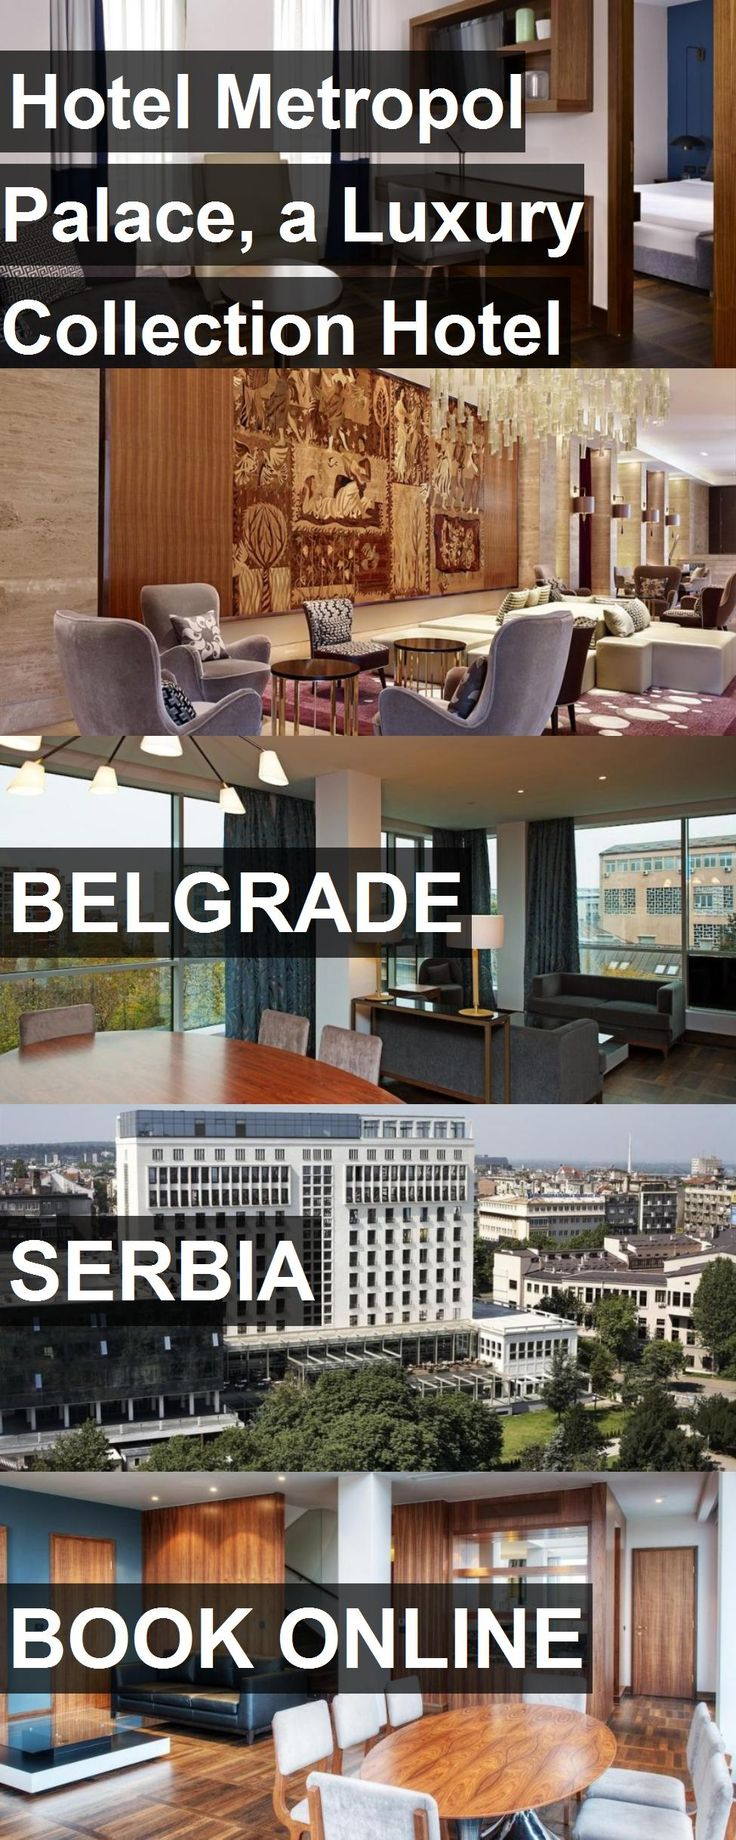 Hotel Hotel Metropol Palace, a Luxury Collection Hotel in Belgrade, Serbia. For more information, photos, reviews and best prices please follow the link. #Serbia #Belgrade #HotelMetropolPalace,aLuxuryCollectionHotel #hotel #travel #vacation